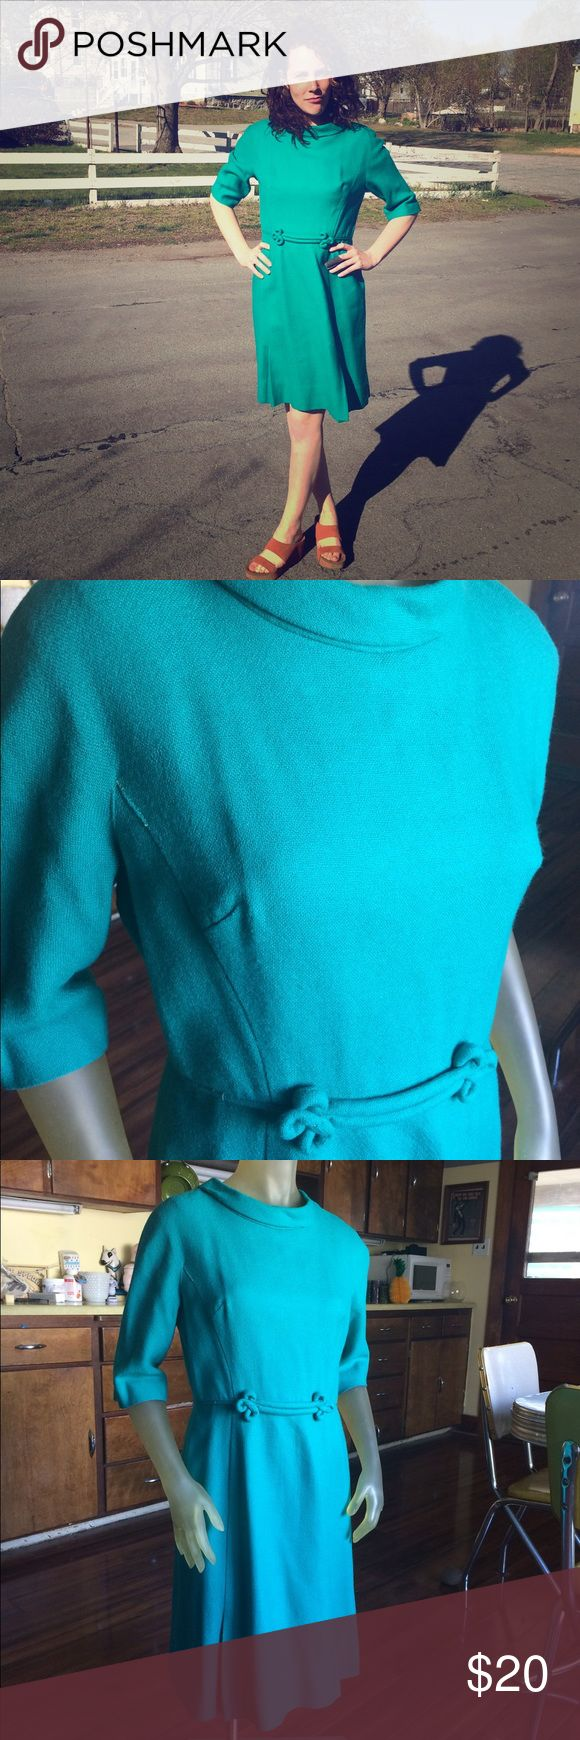 """1960s Teal Green Dress Vintage Timeless sm/m Timeless three quarter length sleeve 1960s dress with waist detailing. This is in great vintage condition, see photos for flaws. Size small/medium. Best for 28"""" waist. Vintage Dresses Long Sleeve"""